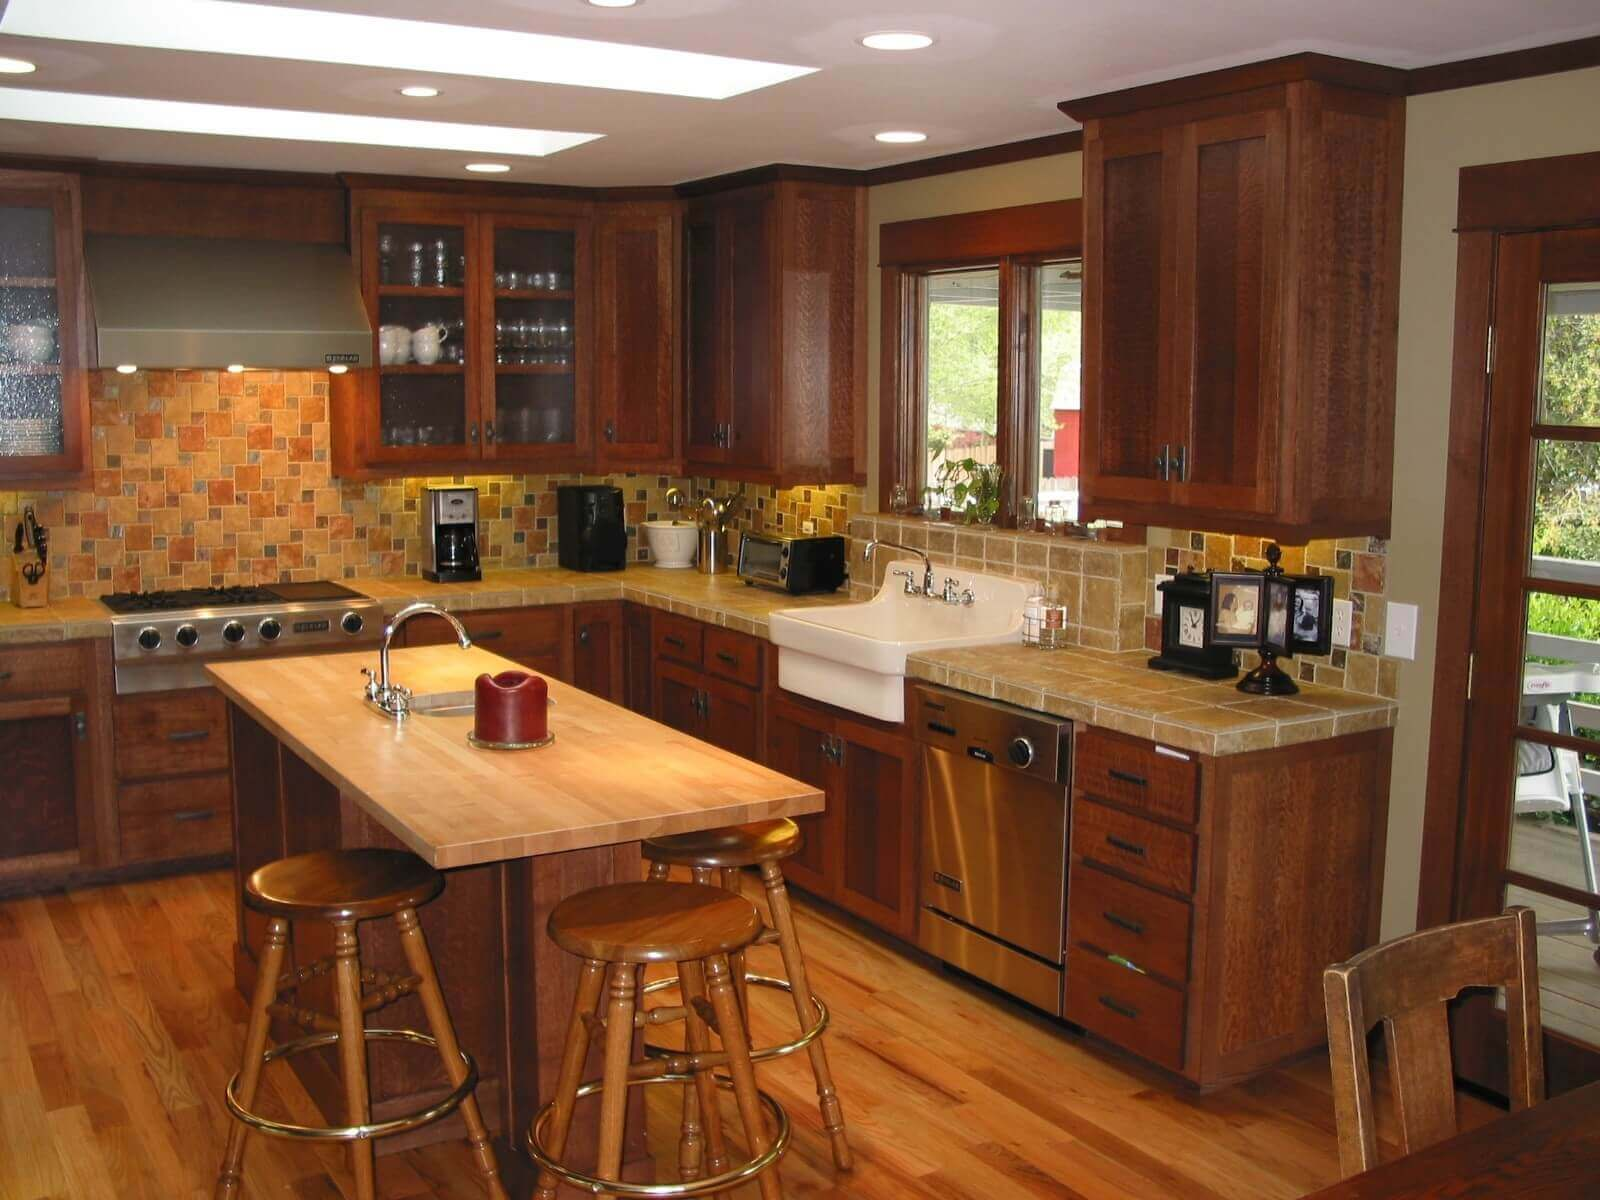 Modern Kitchen with Oak Cabinets